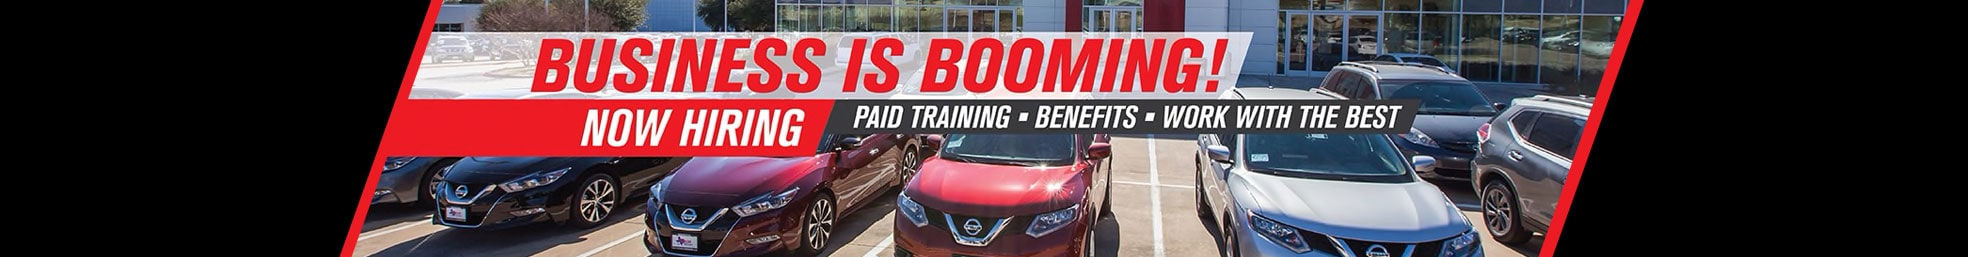 Nissan Dealerships Dfw >> Dallas Fort Worth Nissan Dealer New Used Cars In Grapevine